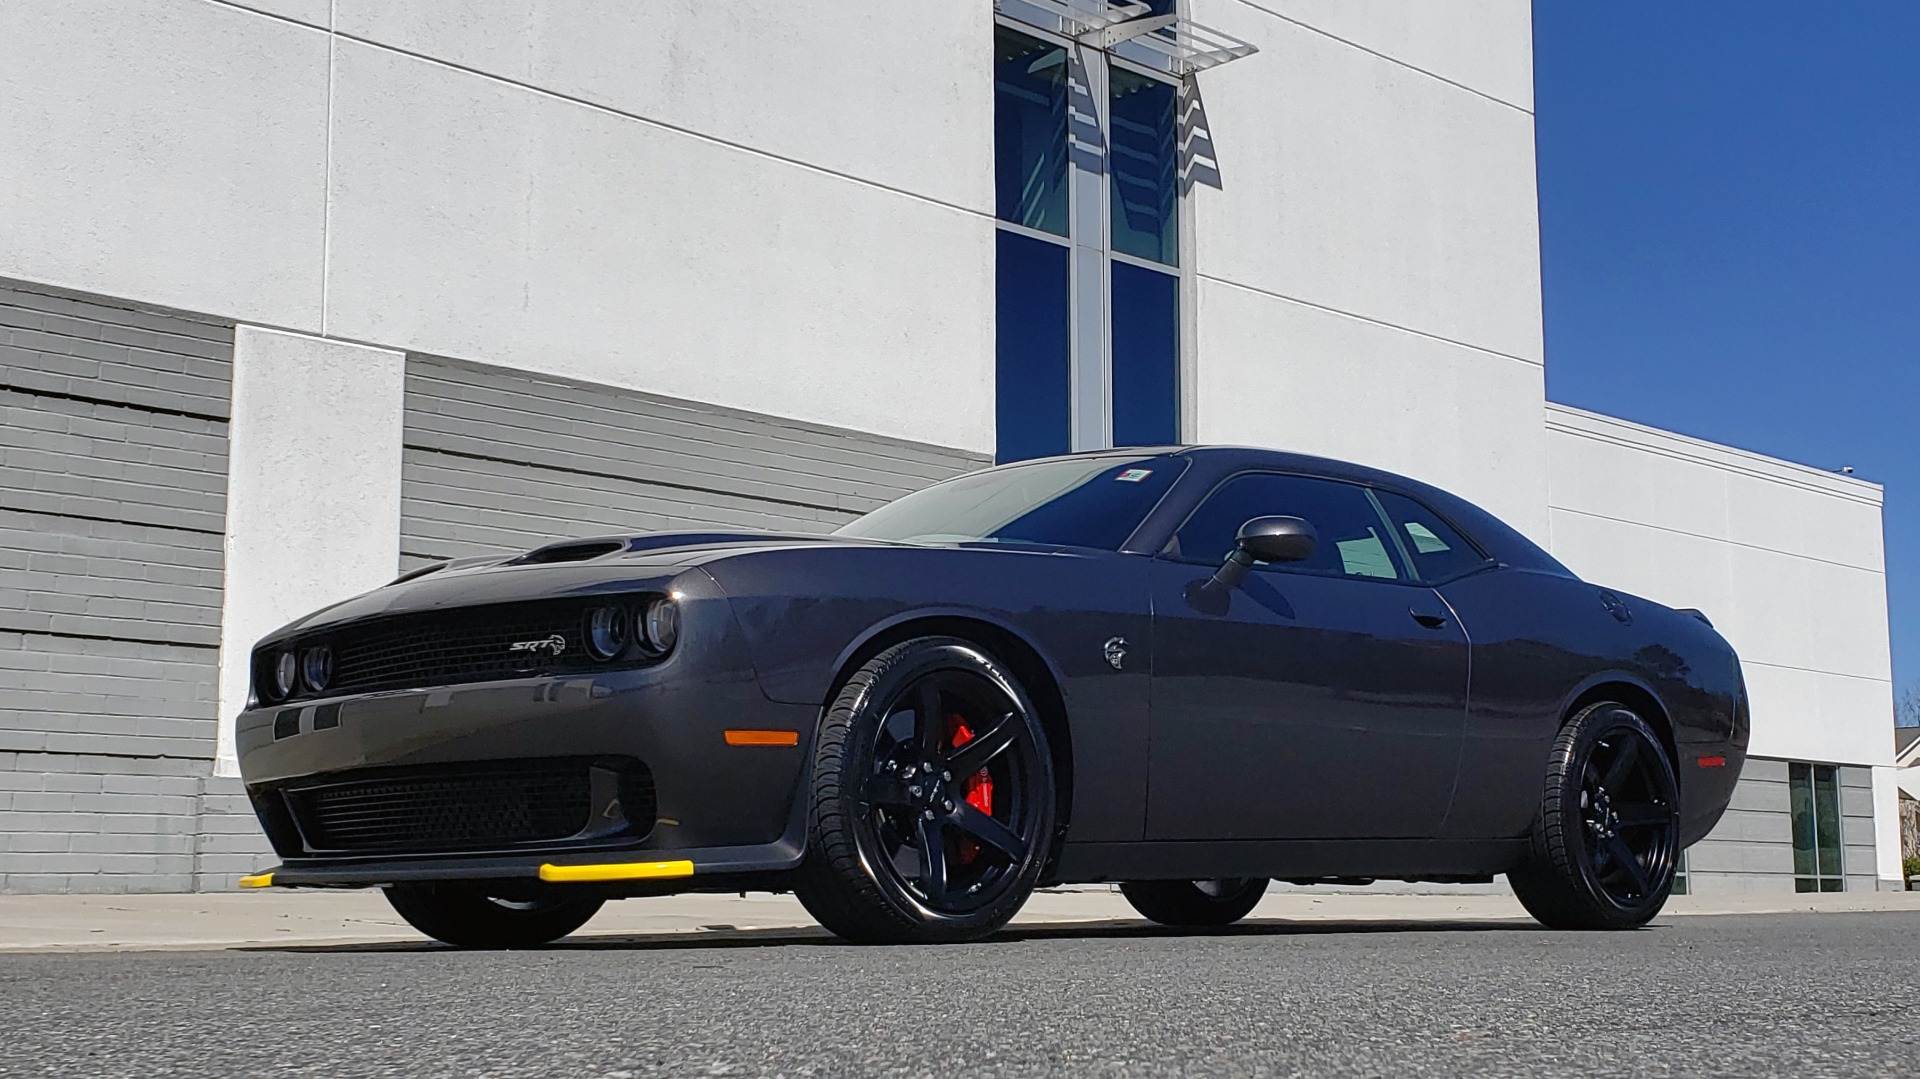 Used 2020 Dodge CHALLENGER SRT HELLCAT (717HP) / NAV / AUTO / CLOTH / REARVIEW / LOW MILES for sale $64,999 at Formula Imports in Charlotte NC 28227 2